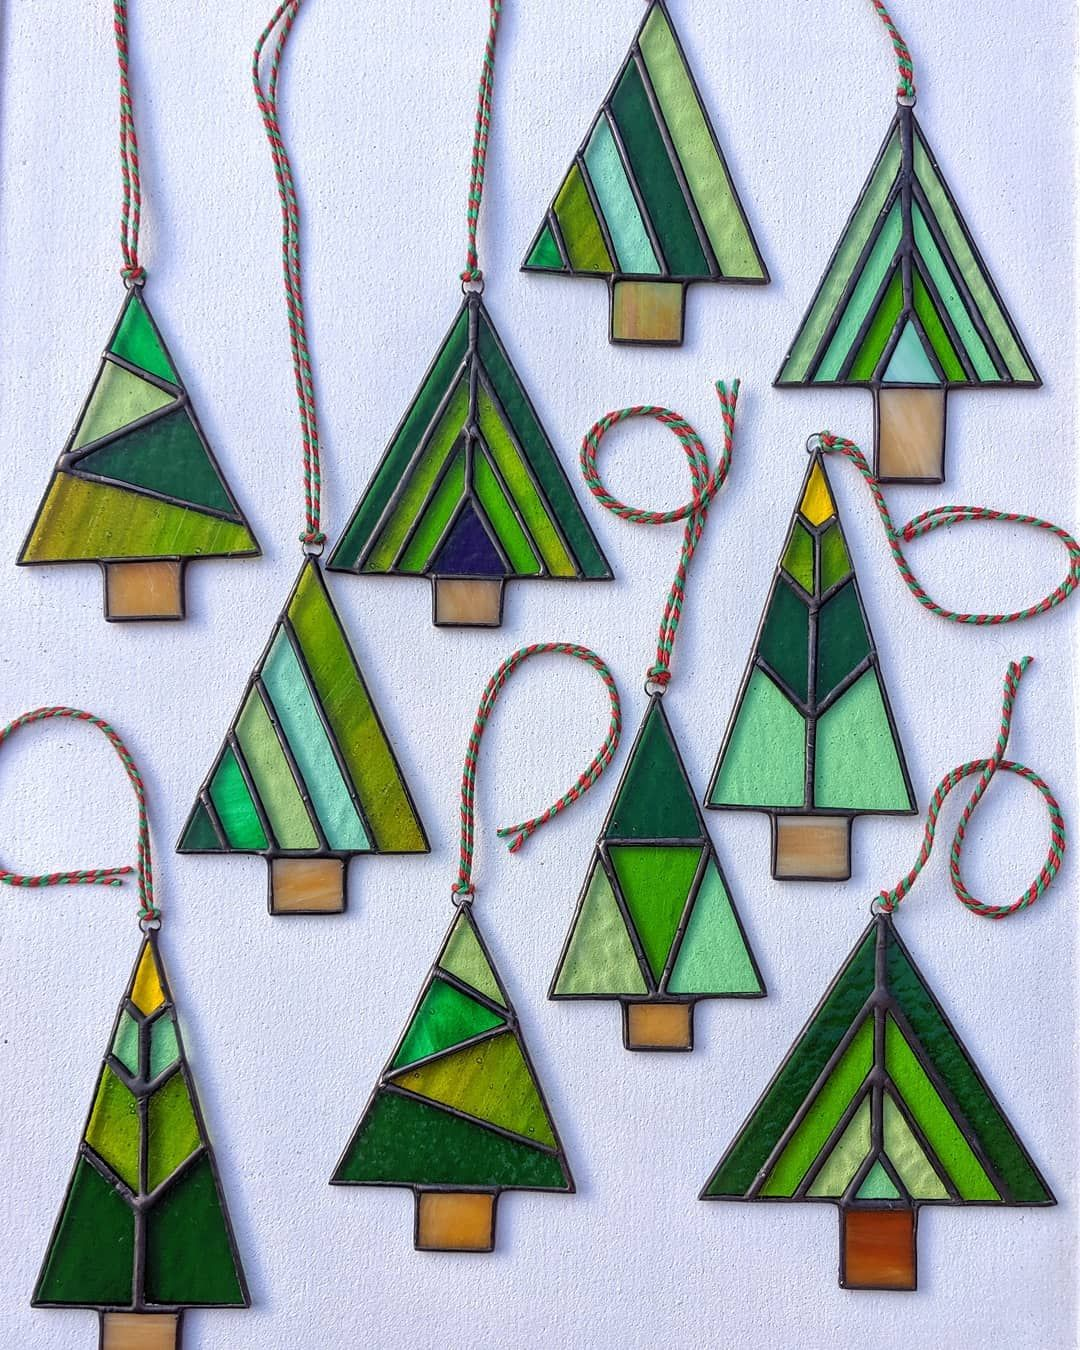 Martin On Instagram A Forest Of New Stained Glass Christmas Tree Designs Made And Now Availabl Stained Glass Christmas Stained Glass Diy Stained Glass Crafts